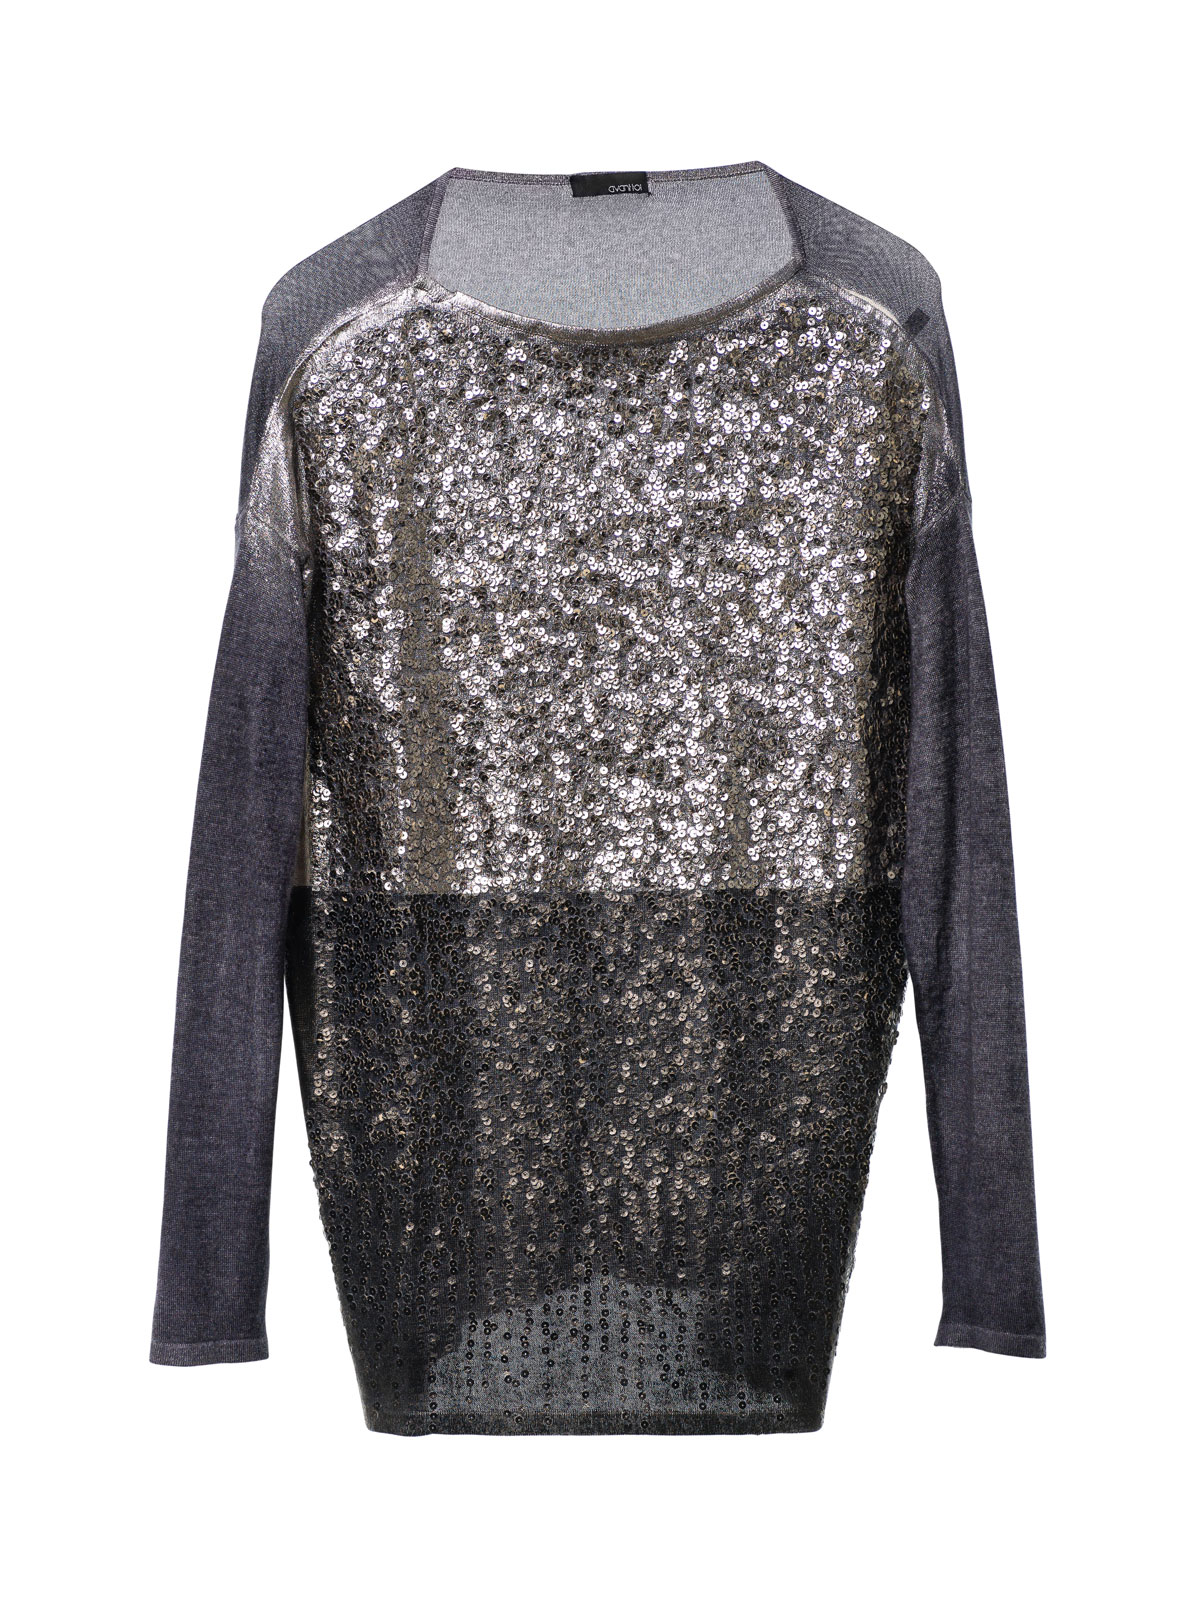 Toi Top Avant Fit Boat Sequined Necks Loose Tx4wq8Cd